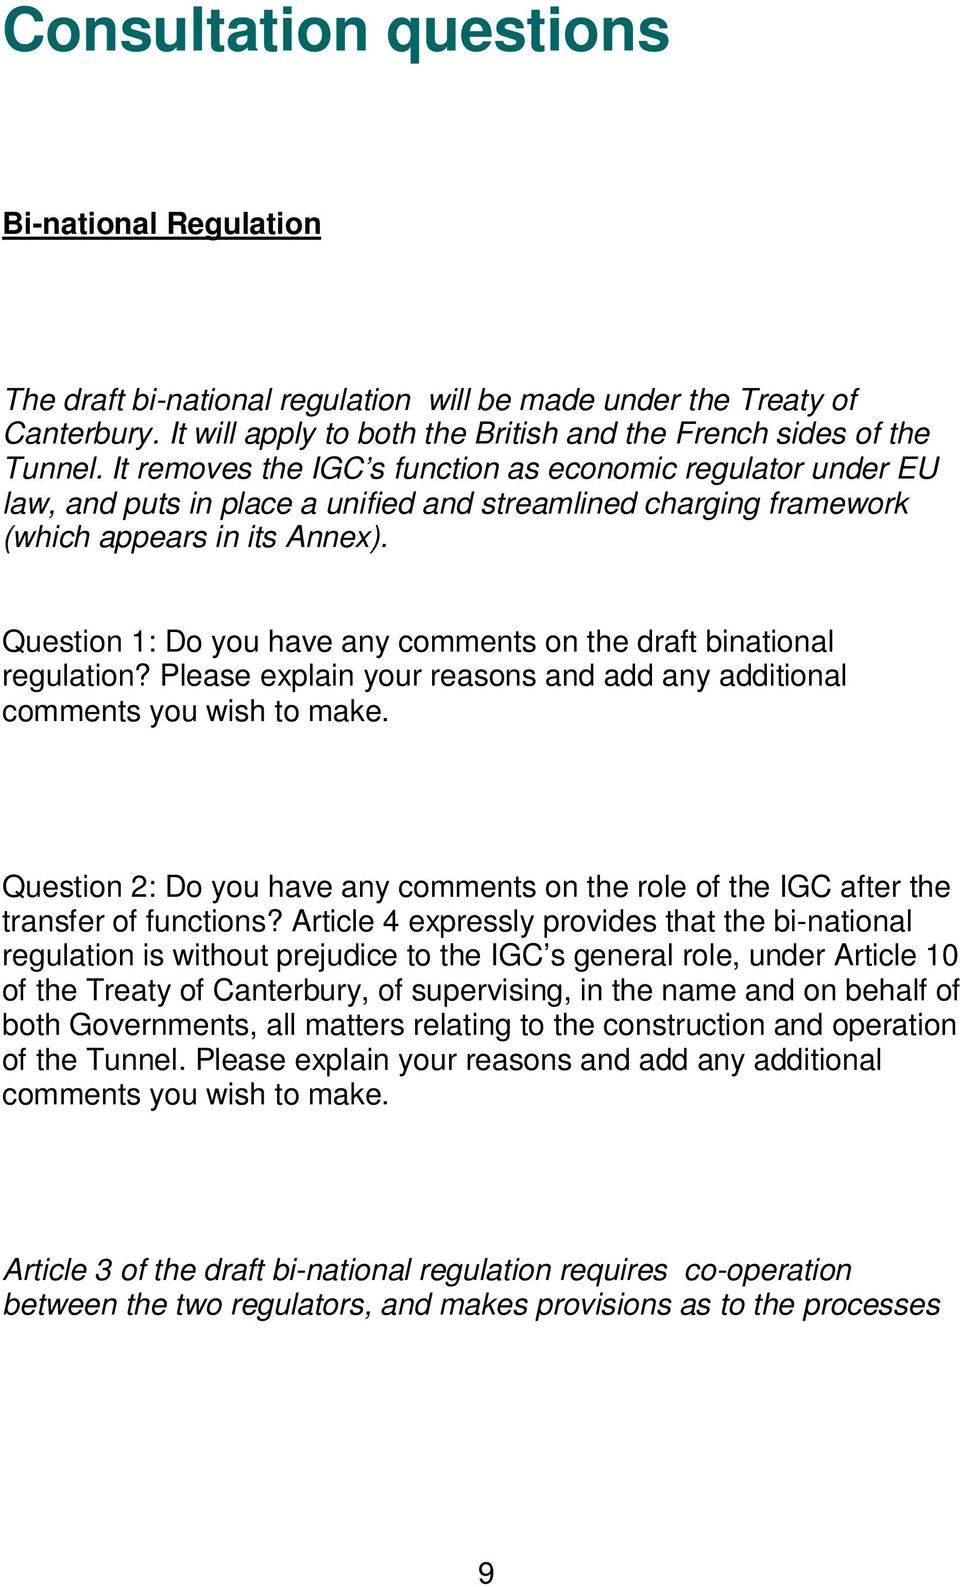 Question 1: Do you have any comments on the draft binational regulation? Please explain your reasons and add any additional comments you wish to make.